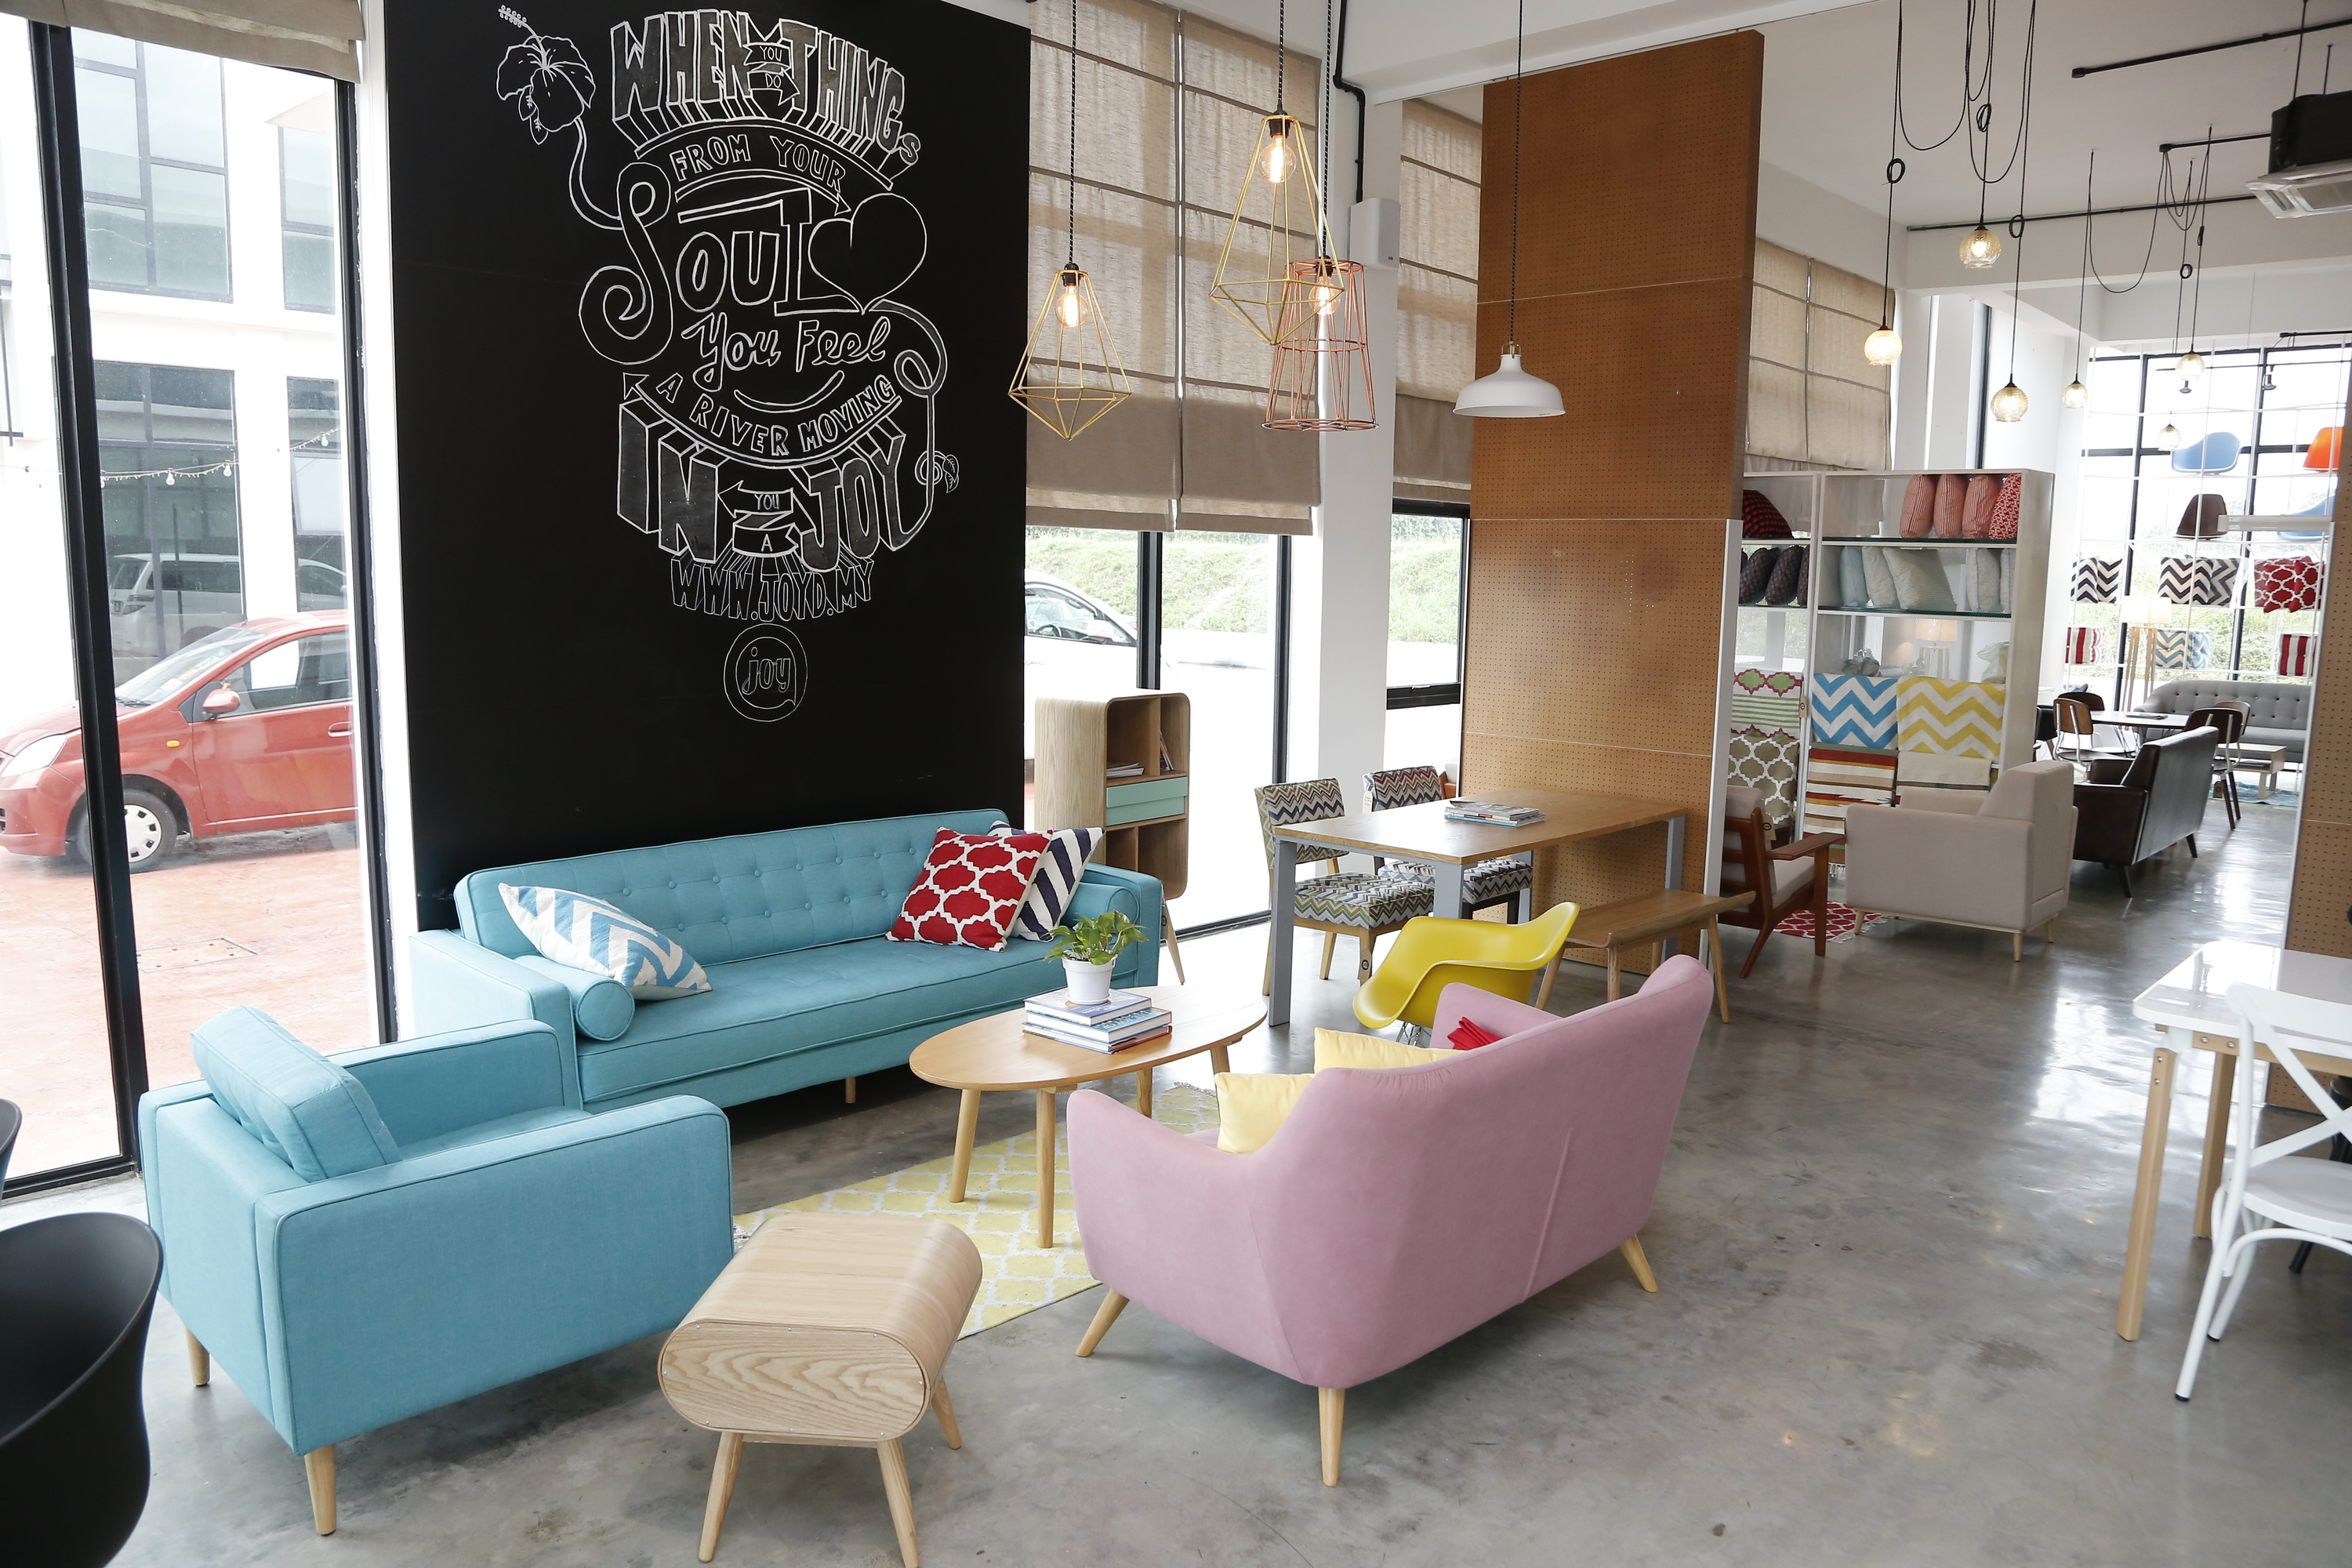 The Best Furniture And Home Decor Stores In Kl